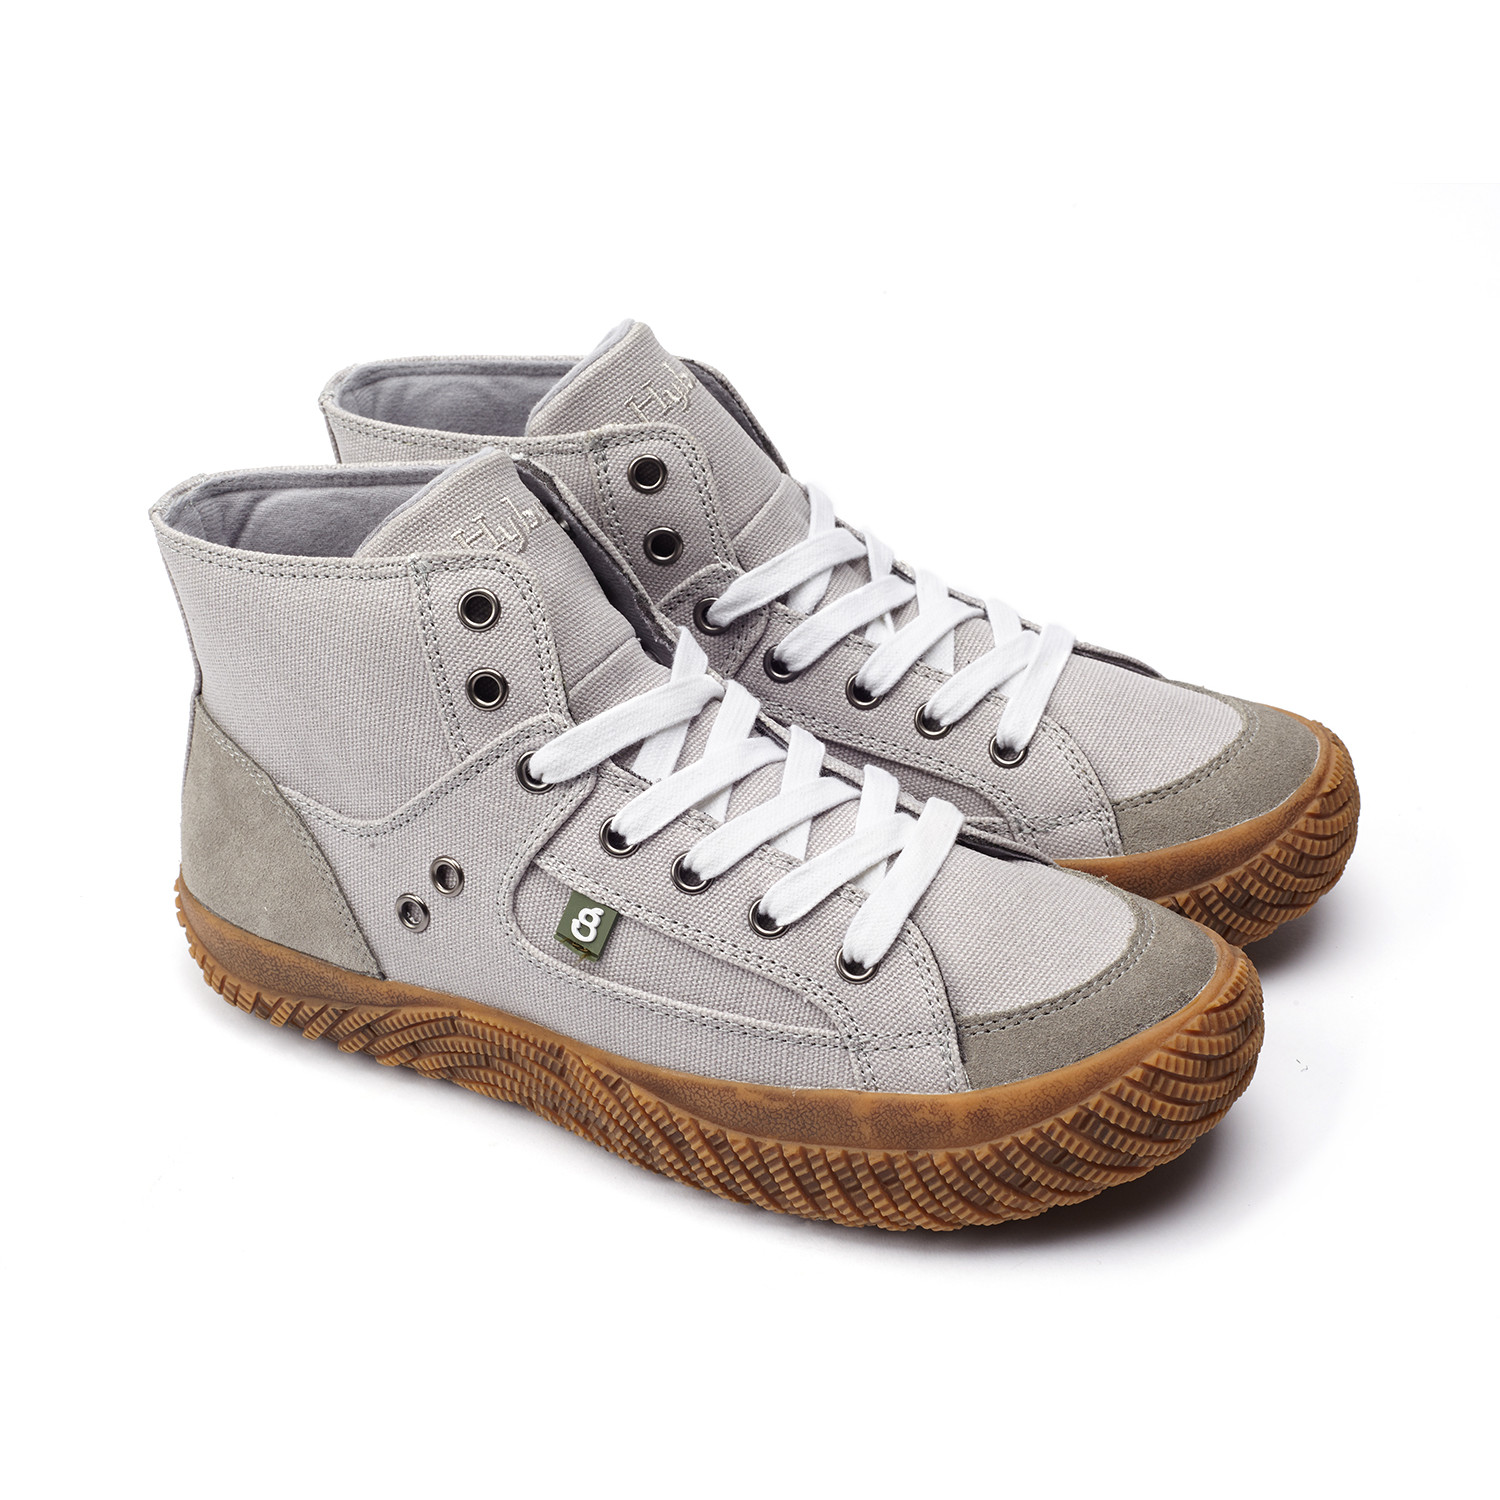 Hybrid Green Label Fearless Canvas High-Top Sneaker pIGXFDe4JH